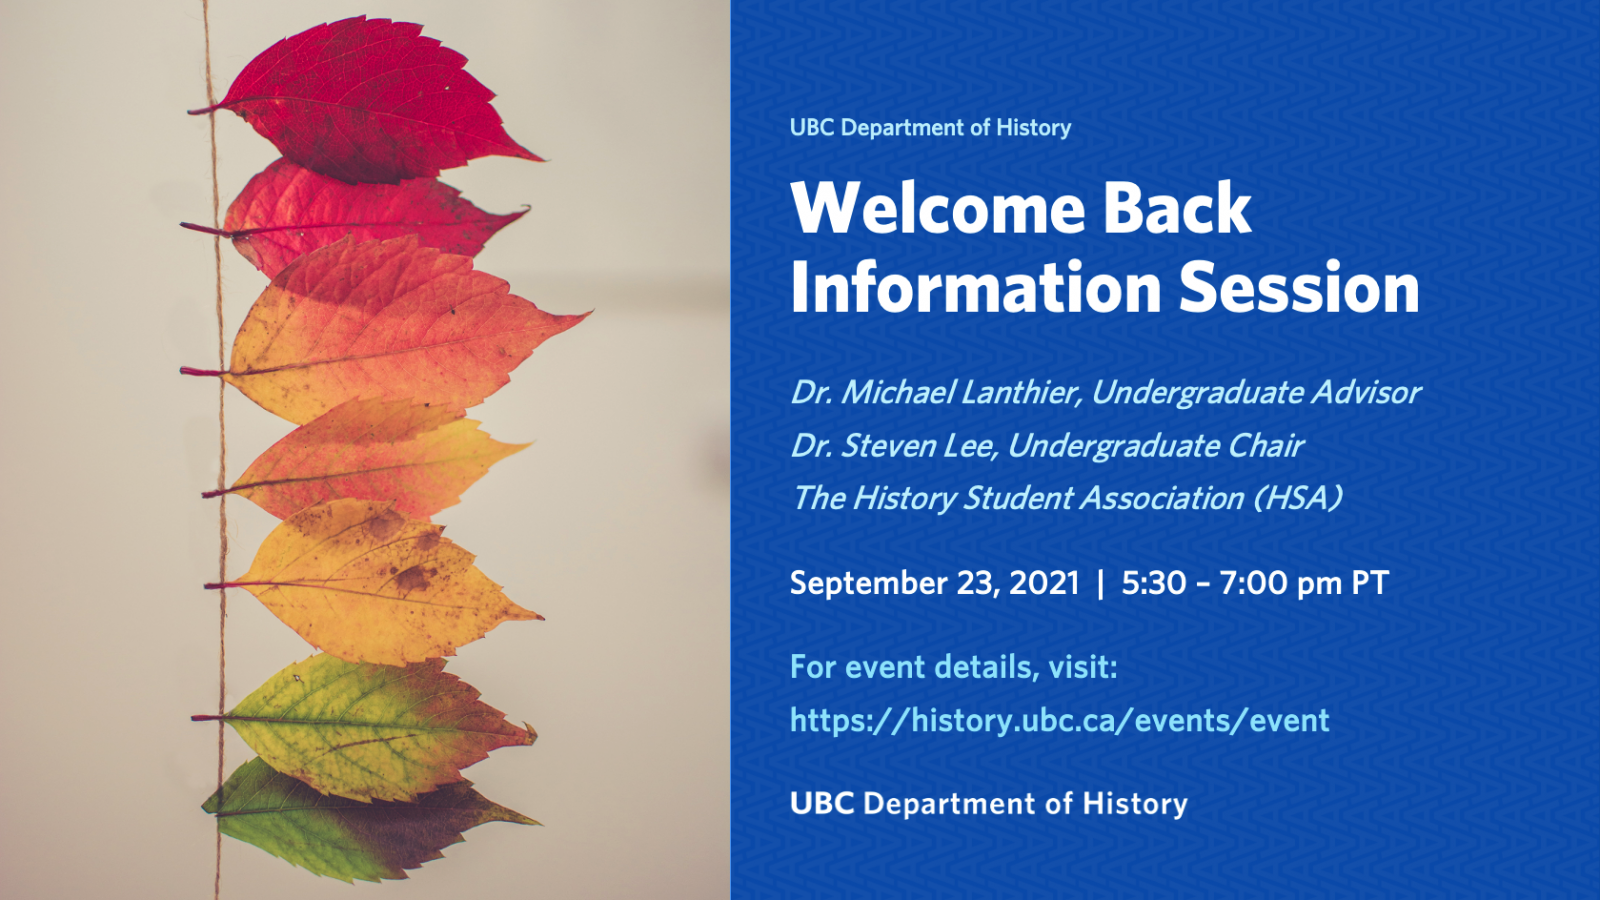 Welcome Back Information Session with Dr. Michael Lanthier, Undergraduate Advisor, Dr. Steven Lee, Undergraduate Chair, and the History Student Association. For event details, visit https://history.ubc.ca/events/event